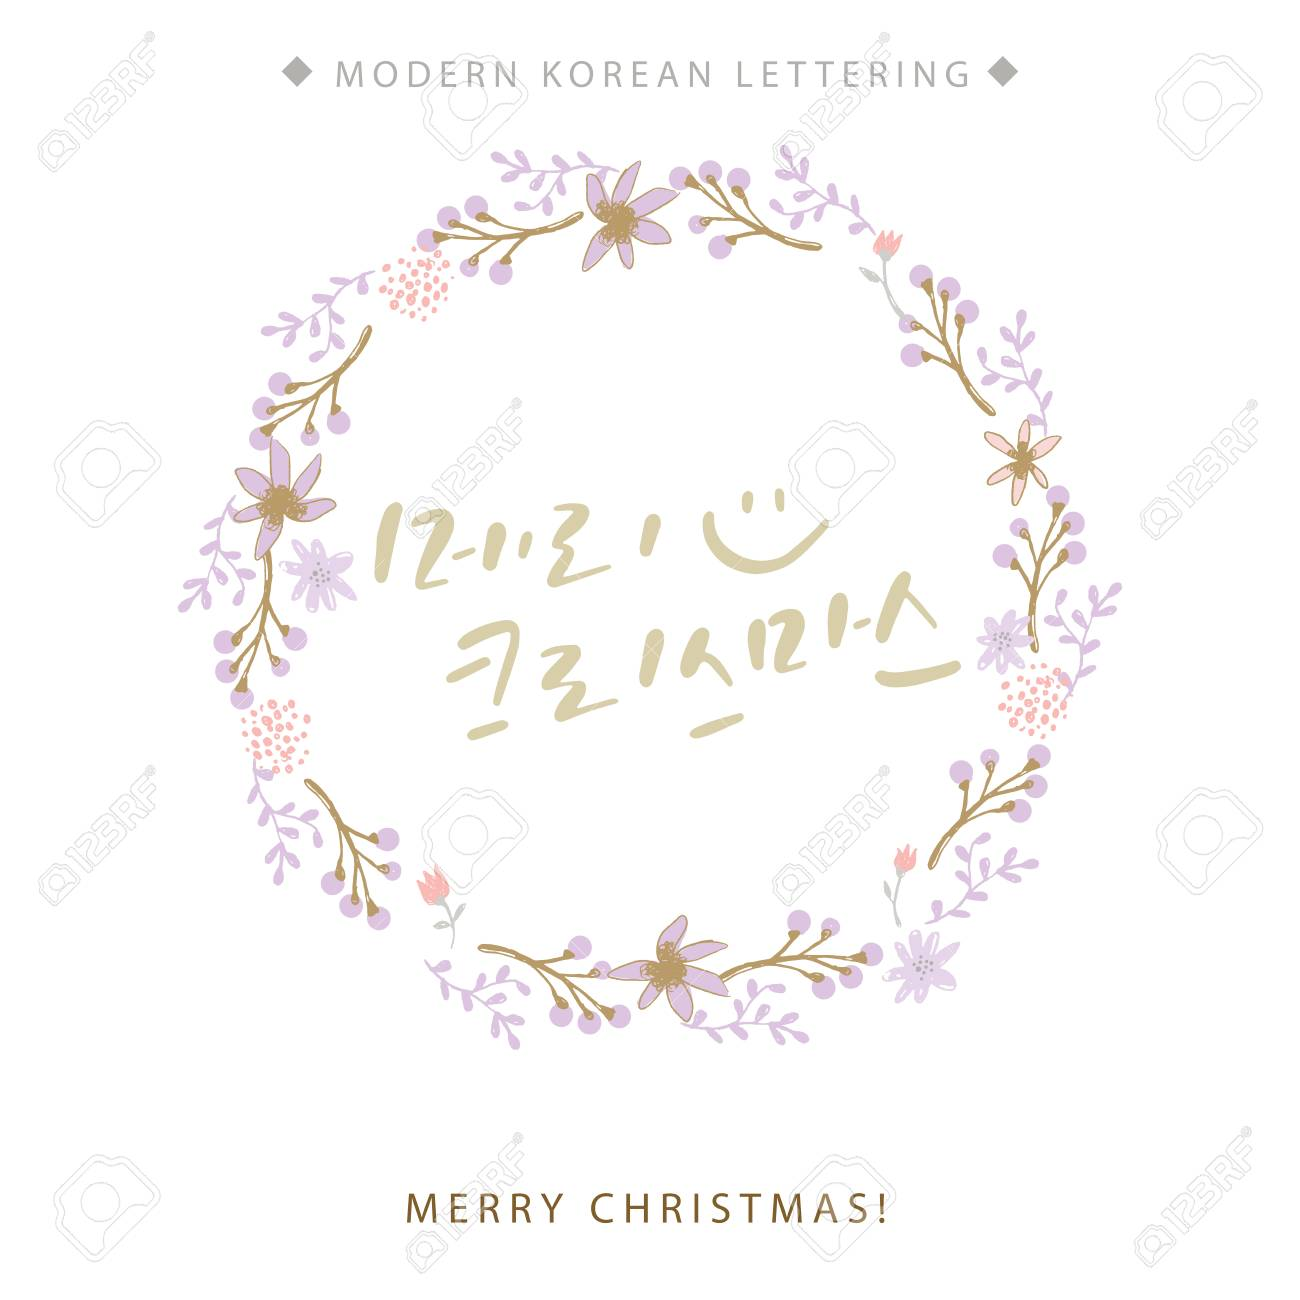 Merry Christmas In Korean.Merry Christmas Modern Korean Hand Lettering Collection Holiday